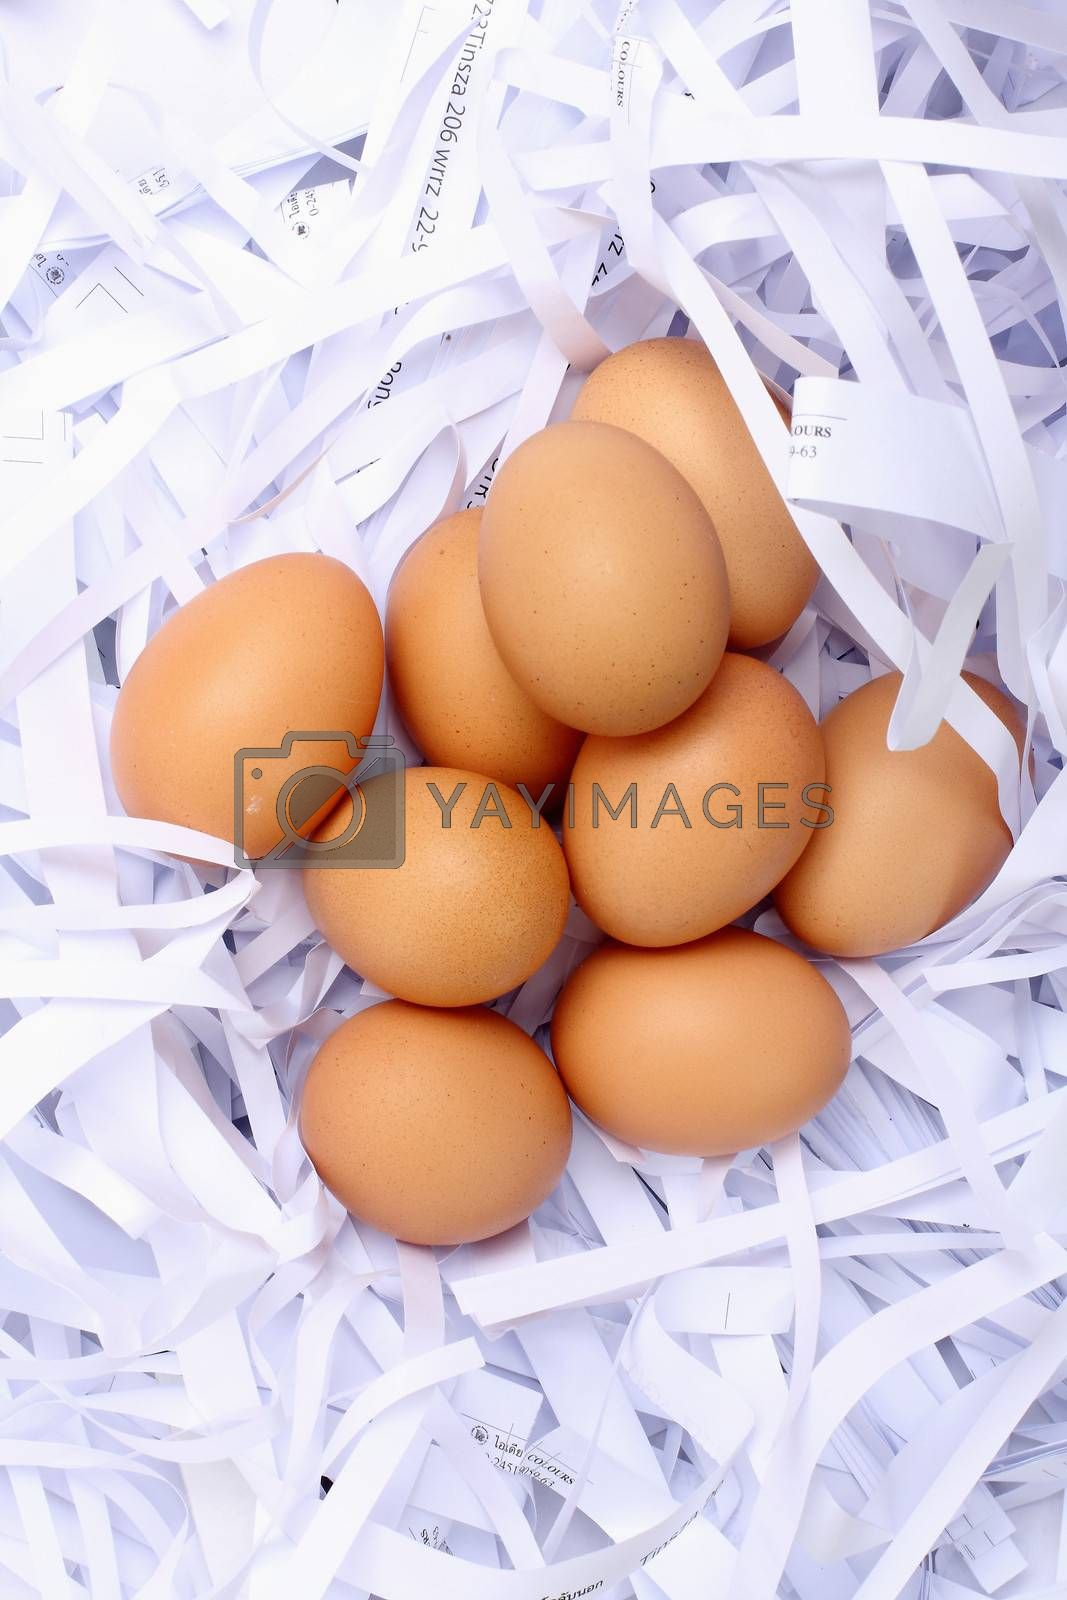 eggs on papers cut background